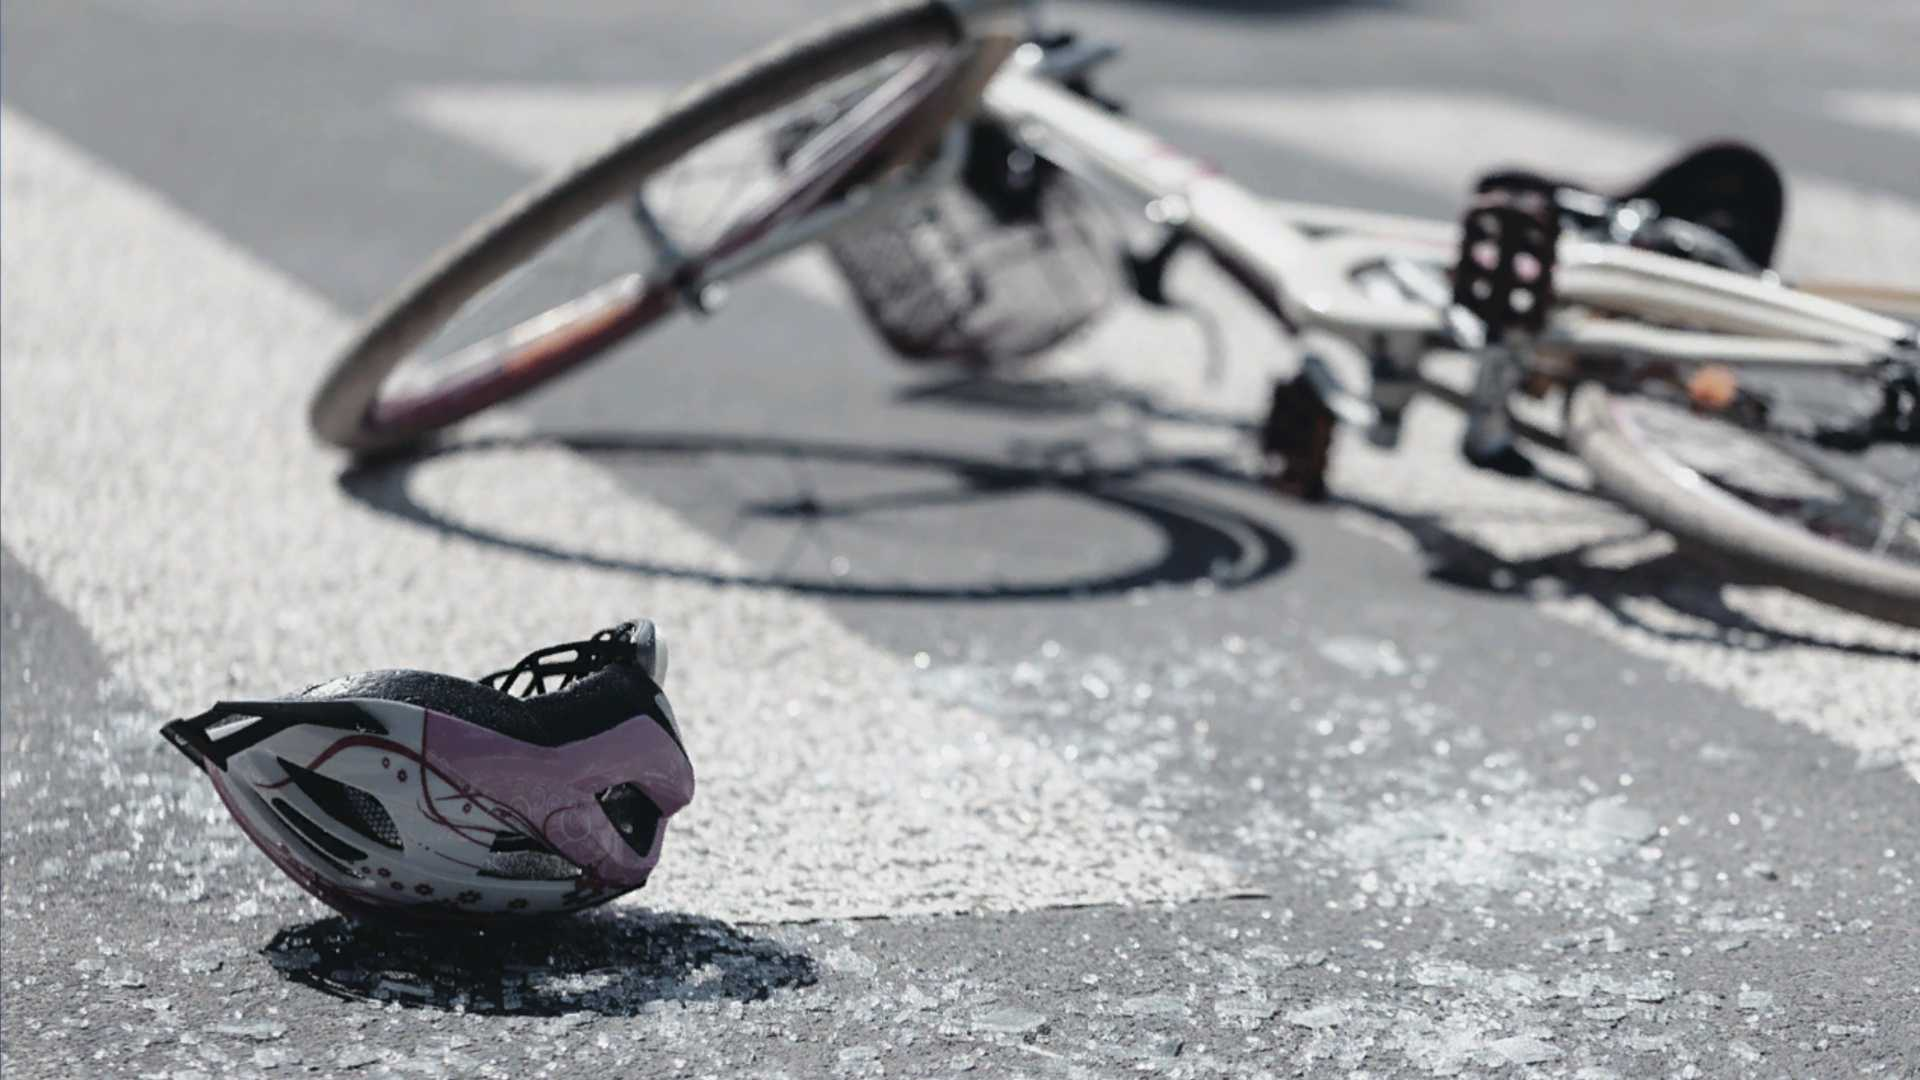 Cyclist in critical condition after hit-and-run in West Palm Beach